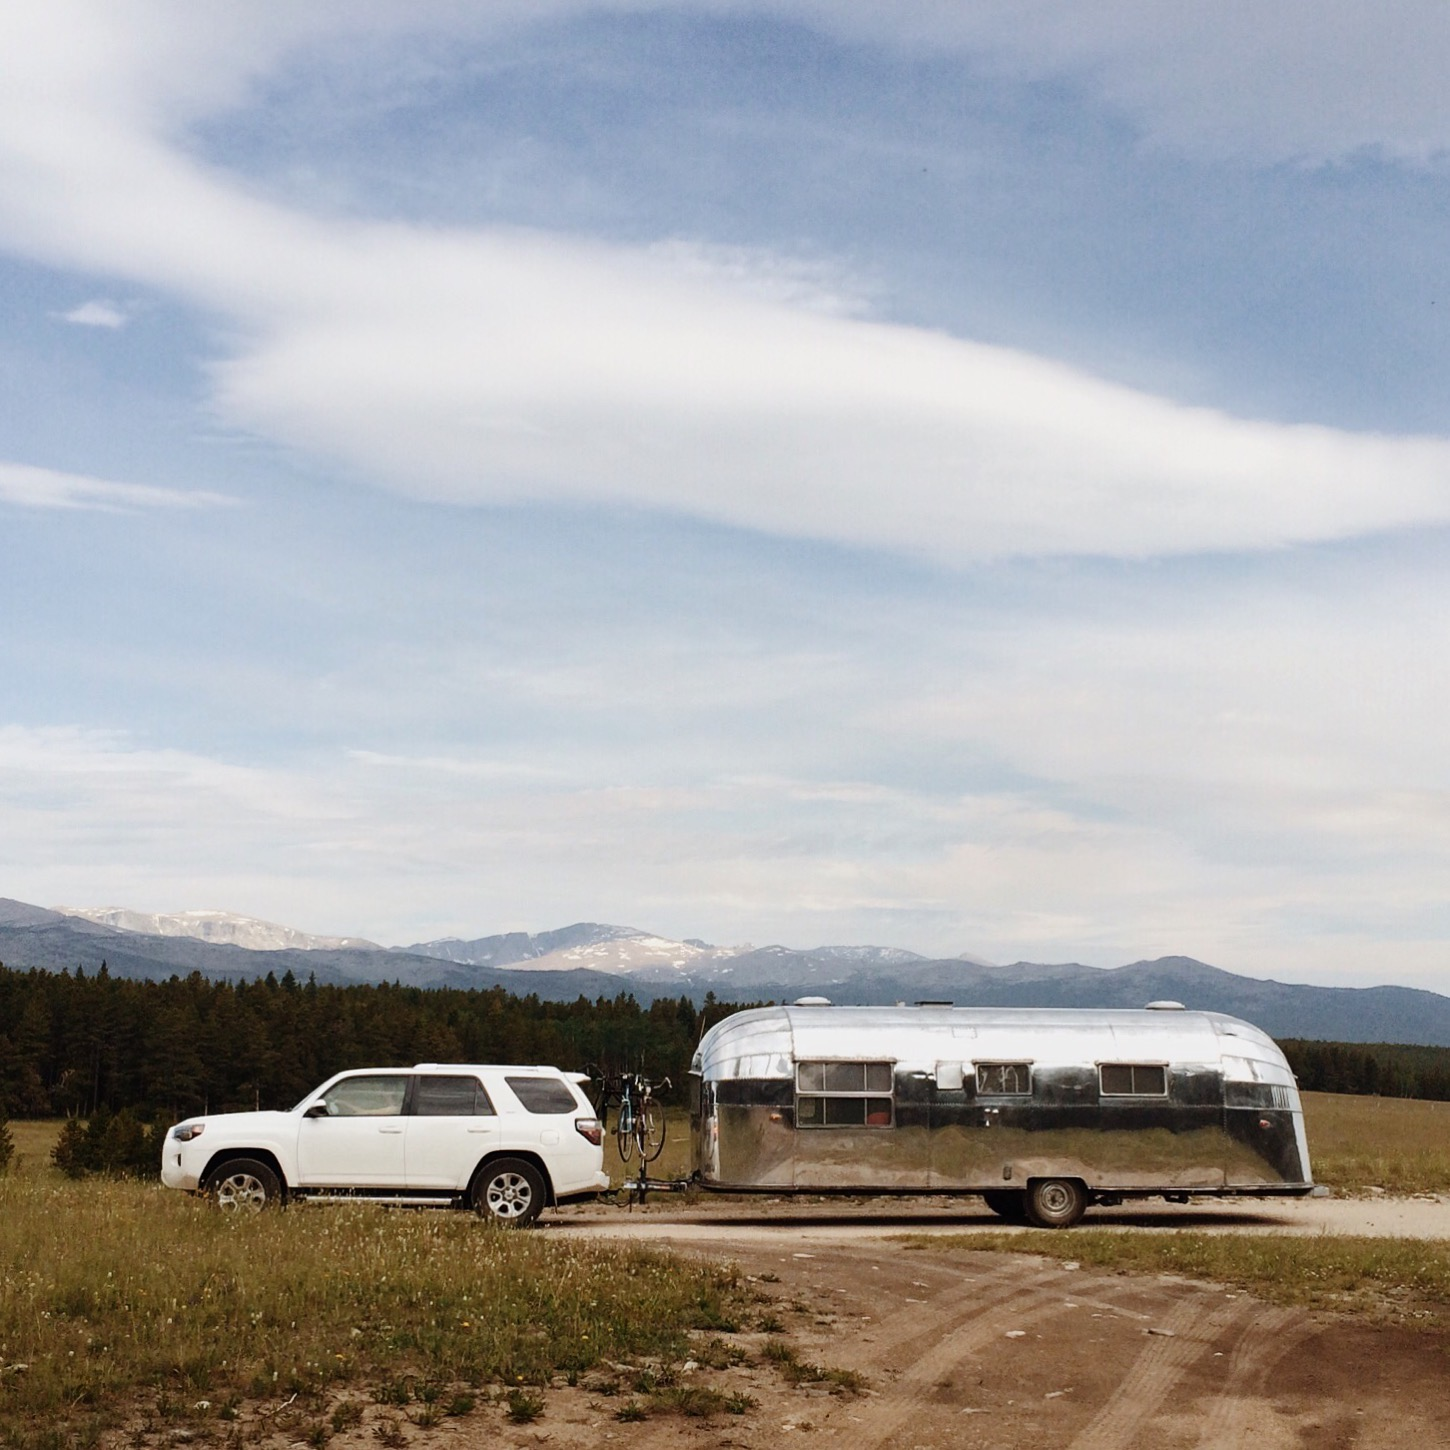 Louise in Wyoming. Breathtaking boondocking site.July 2015. Most insane mosquitos I've ever experienced - but there were just as many wildflowers, so it evened out.